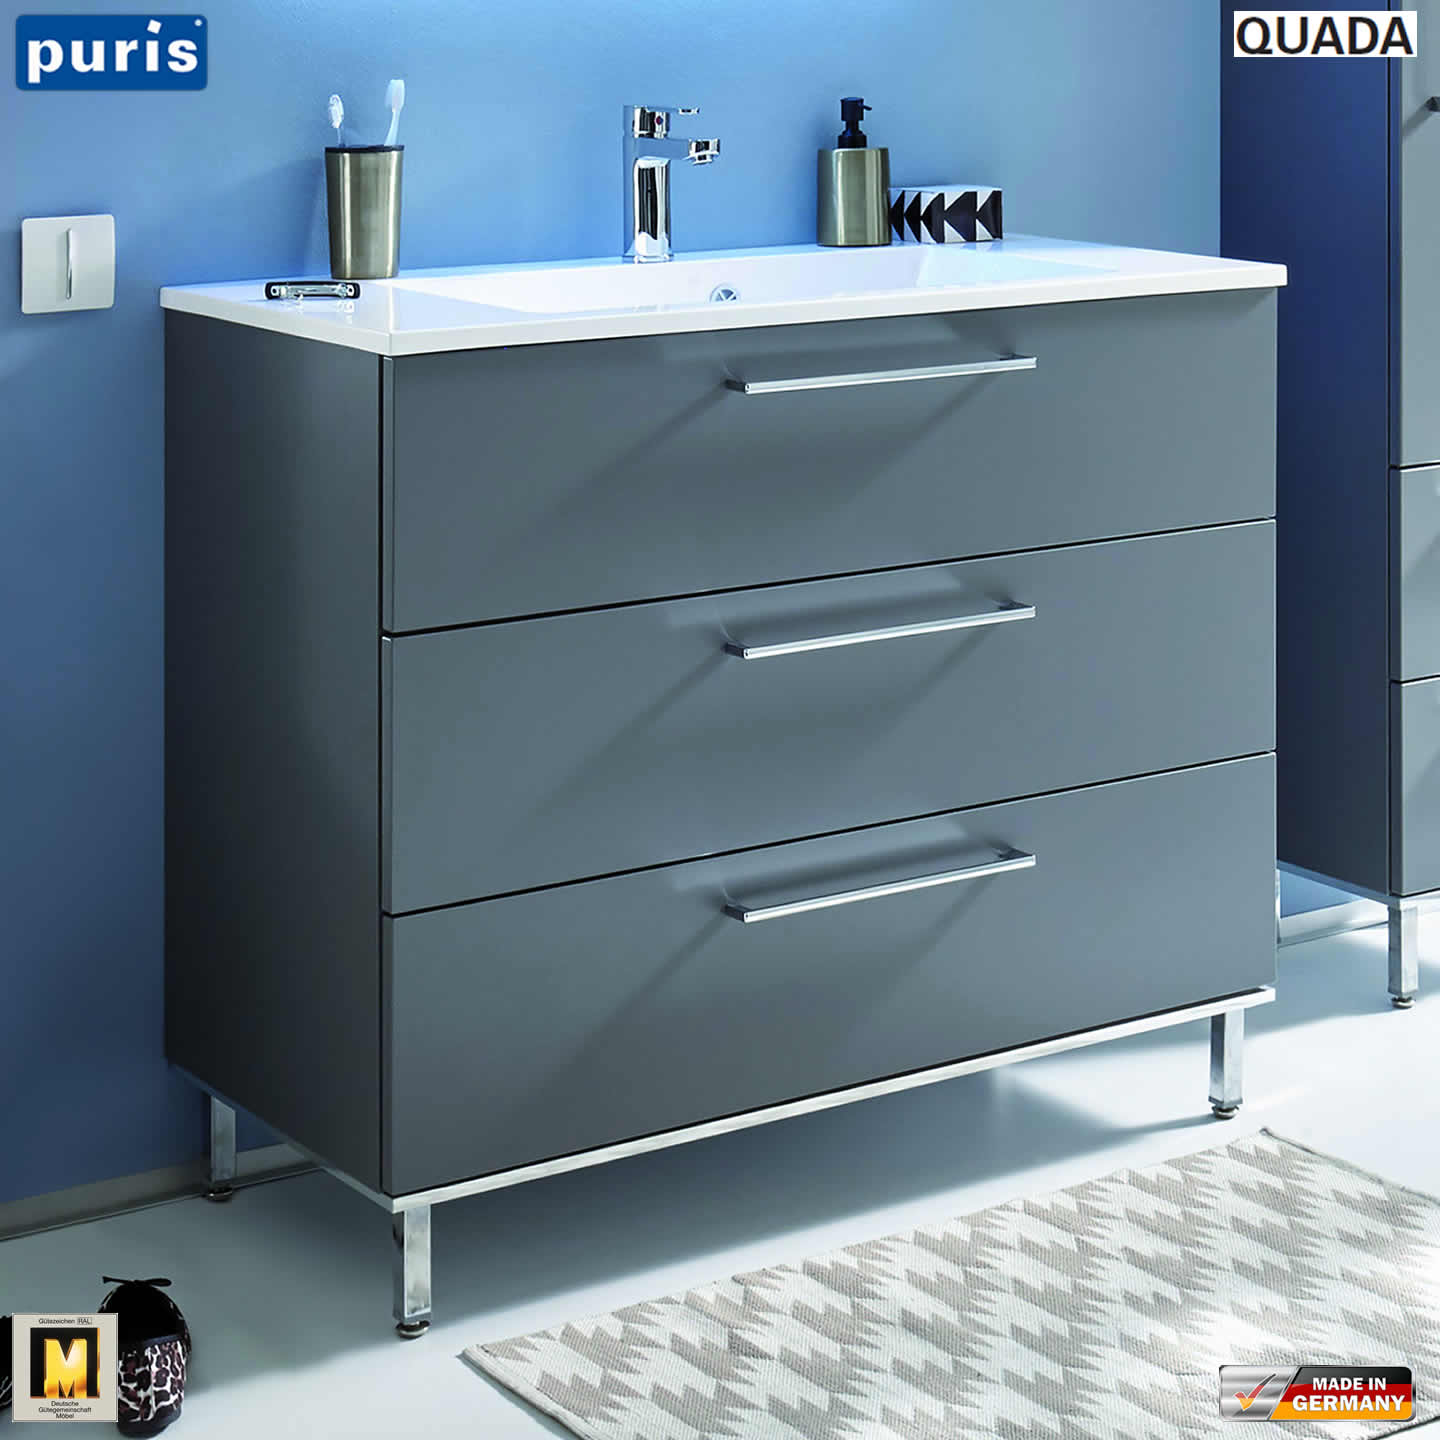 puris quada waschtisch set 100 cm mit mineralguss. Black Bedroom Furniture Sets. Home Design Ideas